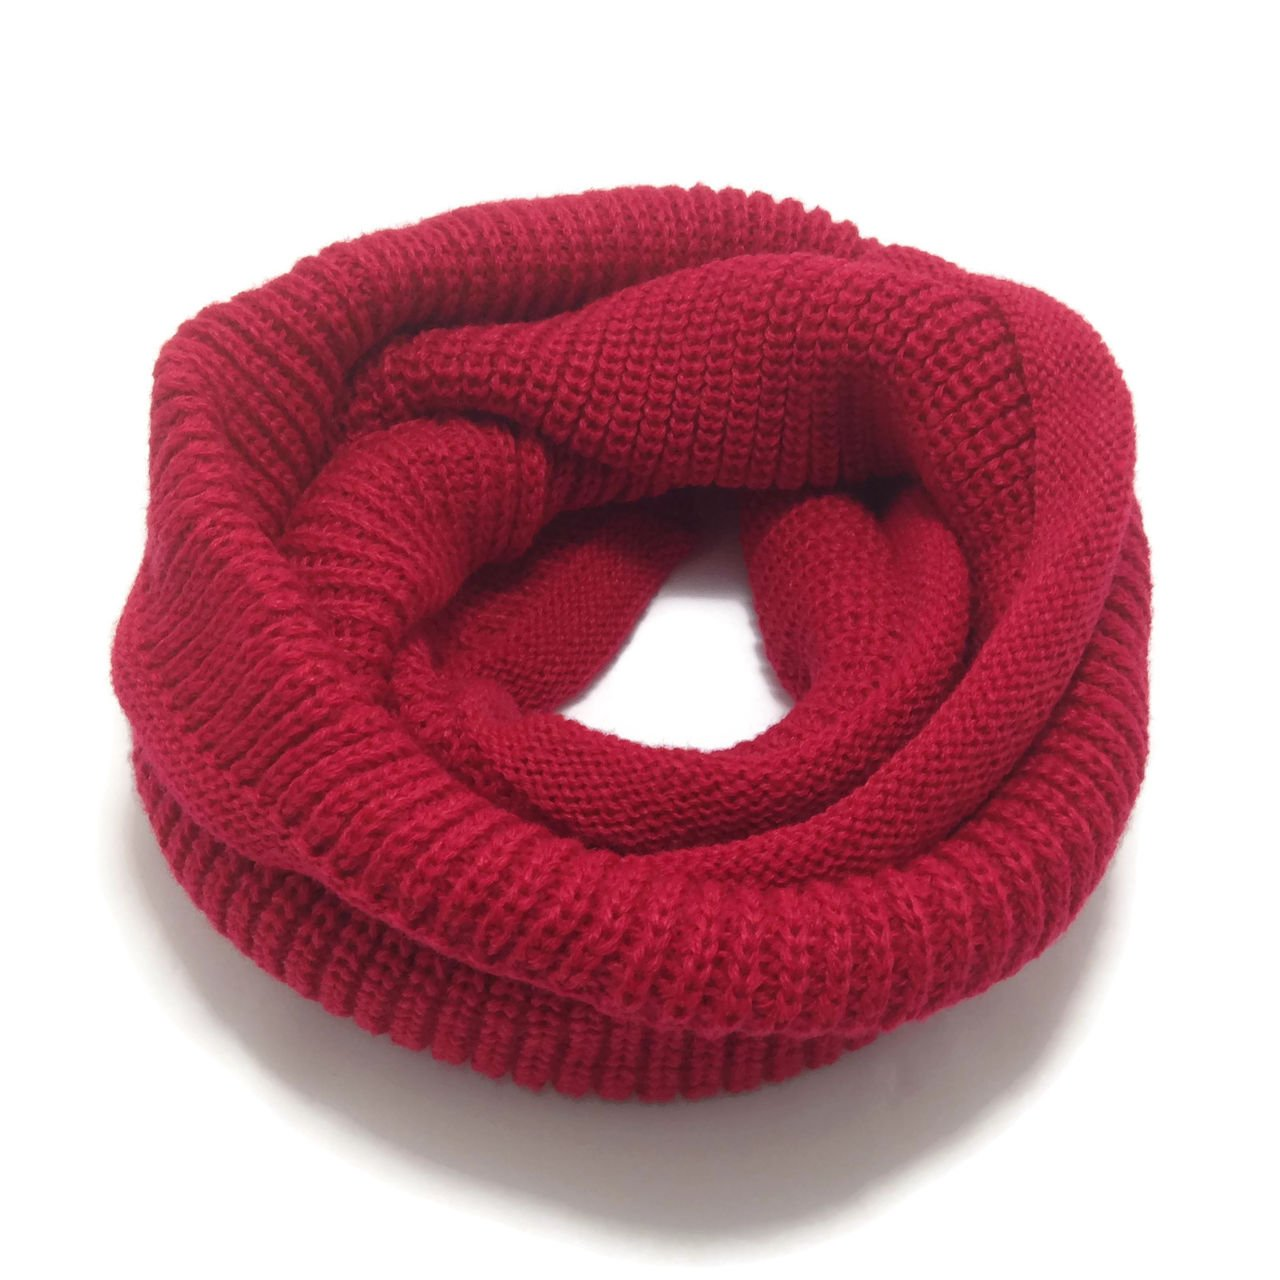 HappyTree Kids Hot Fashion Thick Knitted Winter Warm Infinity Scarf Red